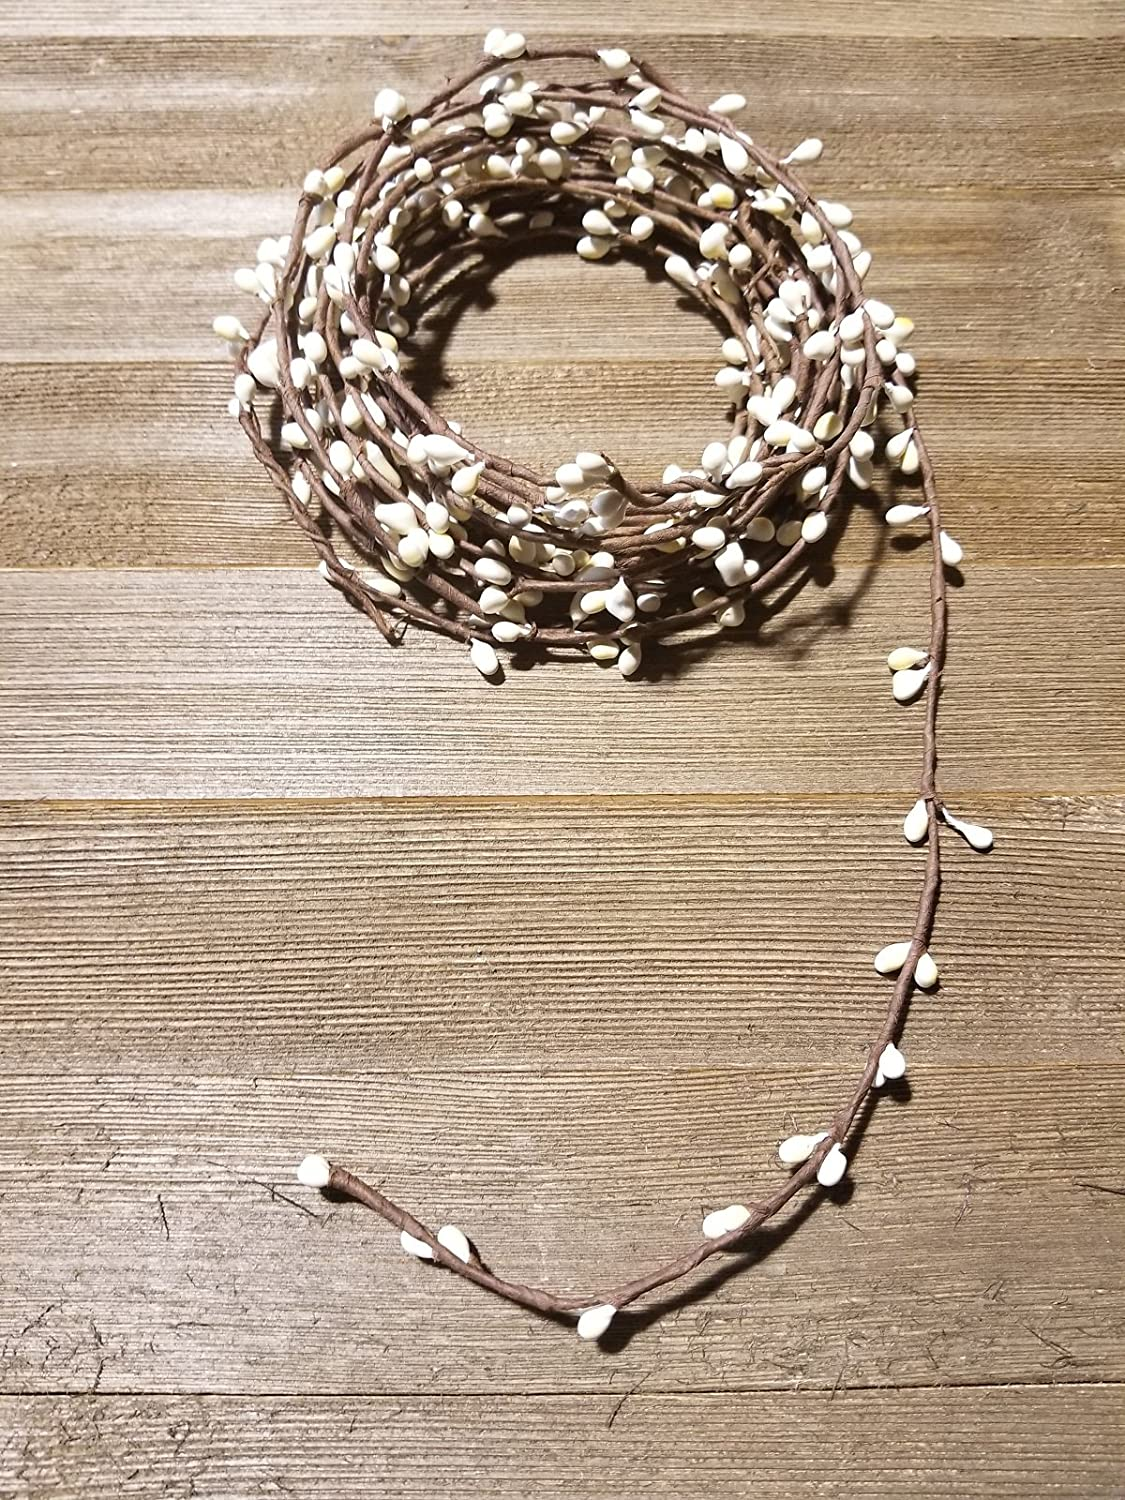 Ivory Pip Berry Single Ply Garland 18' Country Primitive Floral Craft Decor - 3 Strands 6' Garland That Can Be Utilized Separately Twisted Together to Equal 18 Feet String Garland MerdCraft